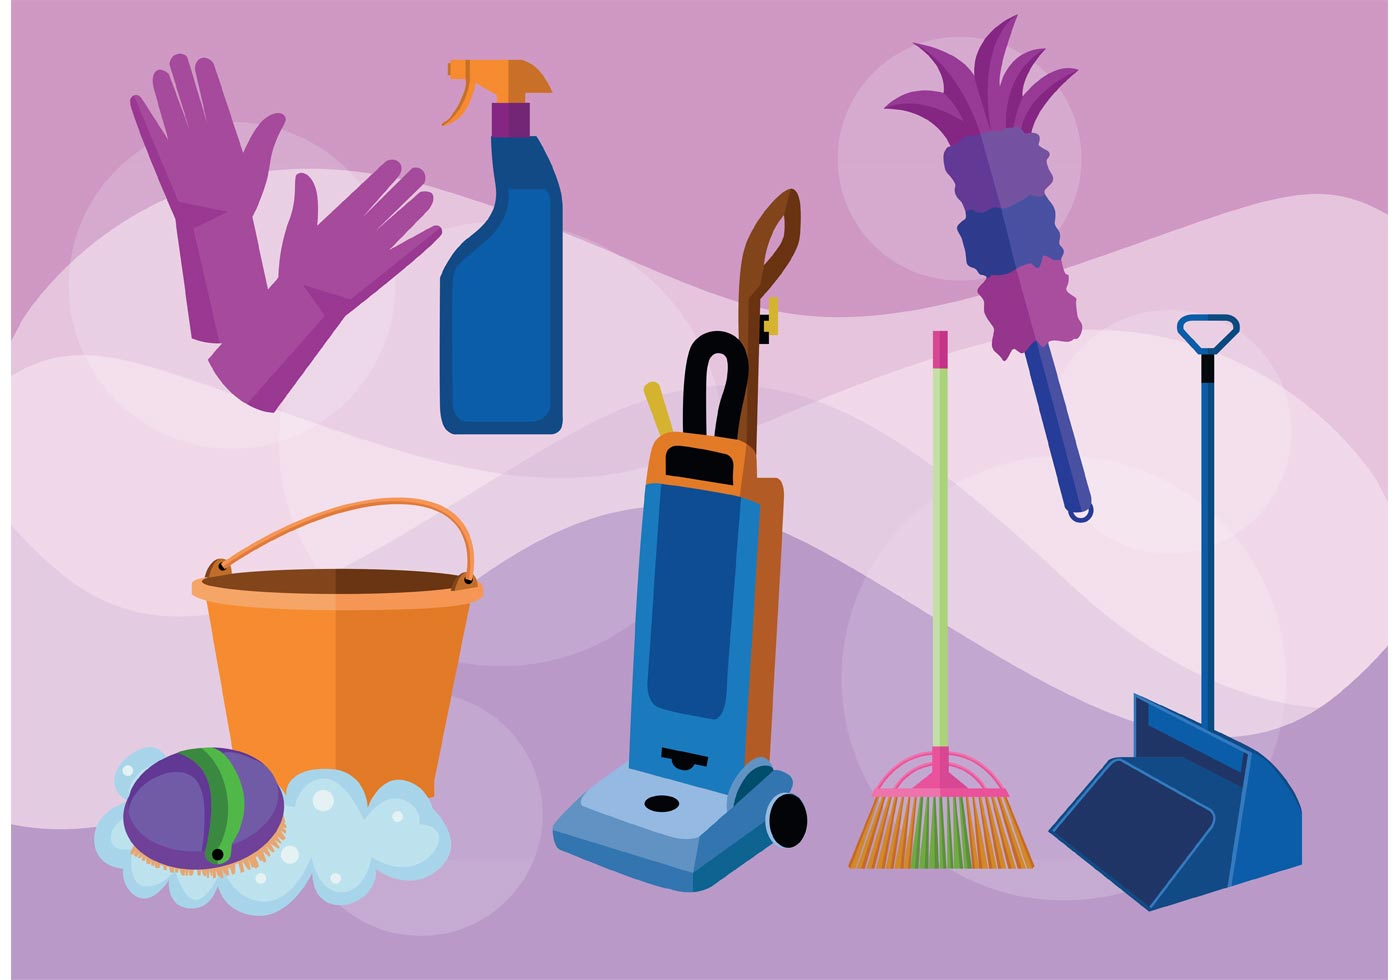 Cleaning Service Vectors - Download Free Vectors, Clipart ...